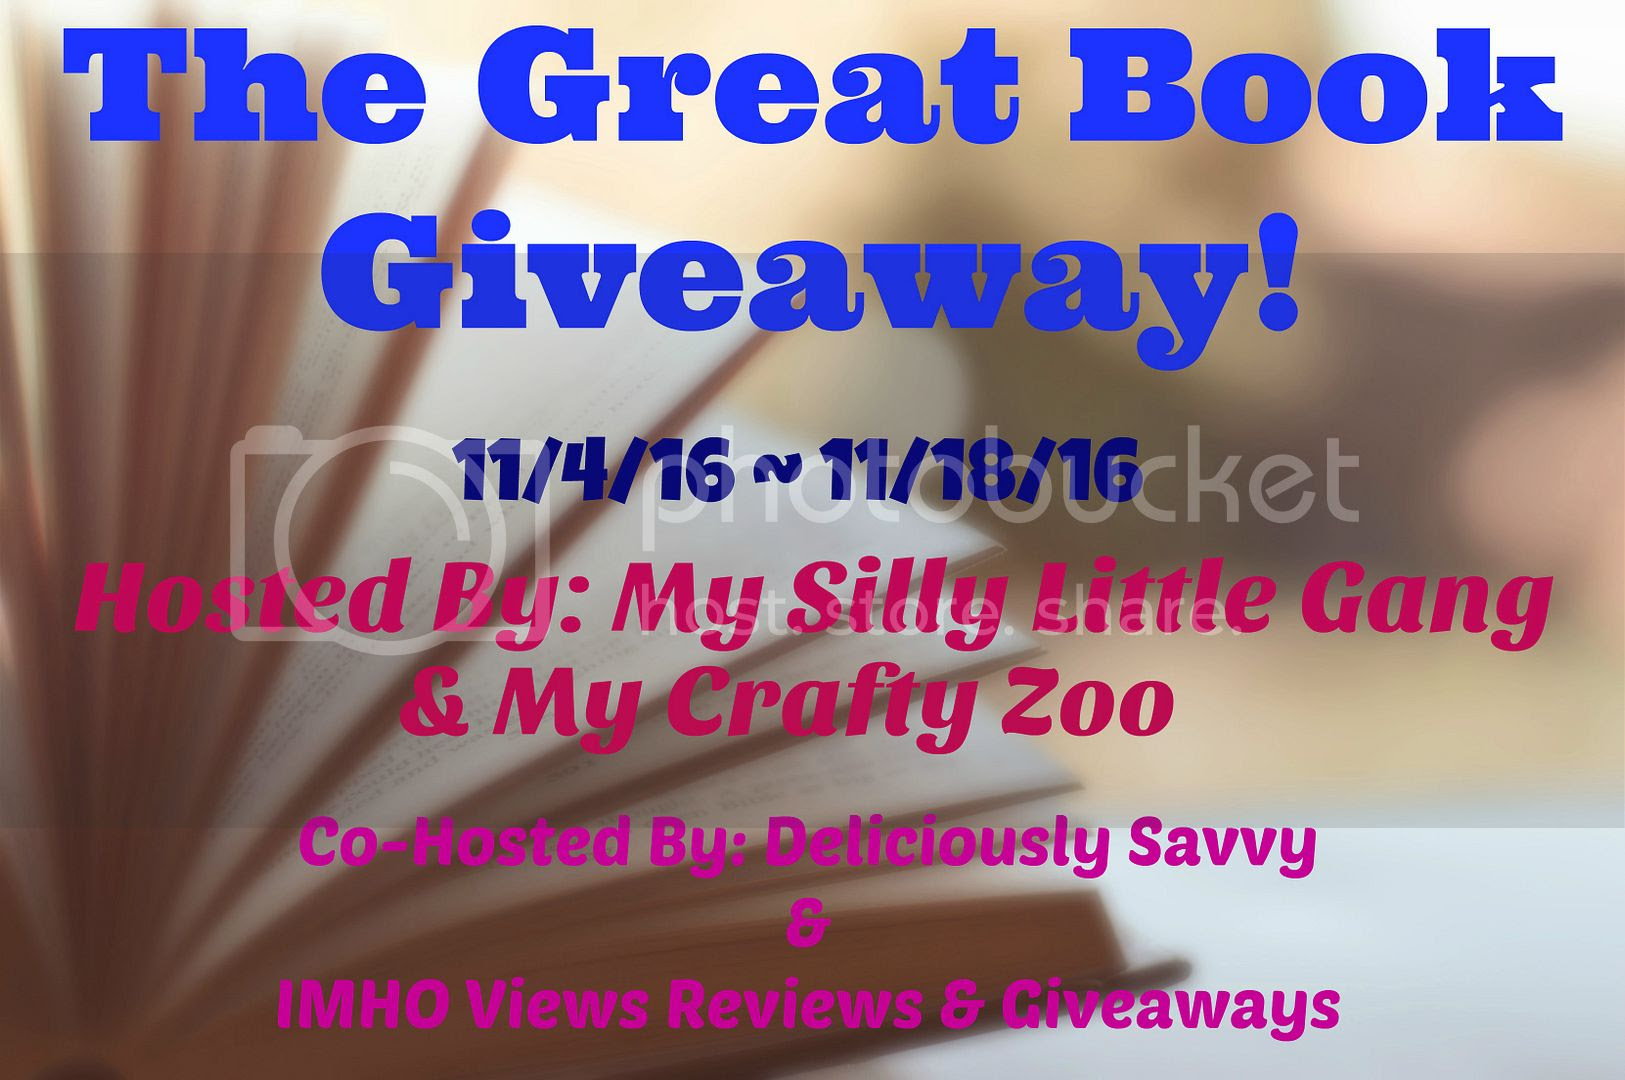 The great book giveaway